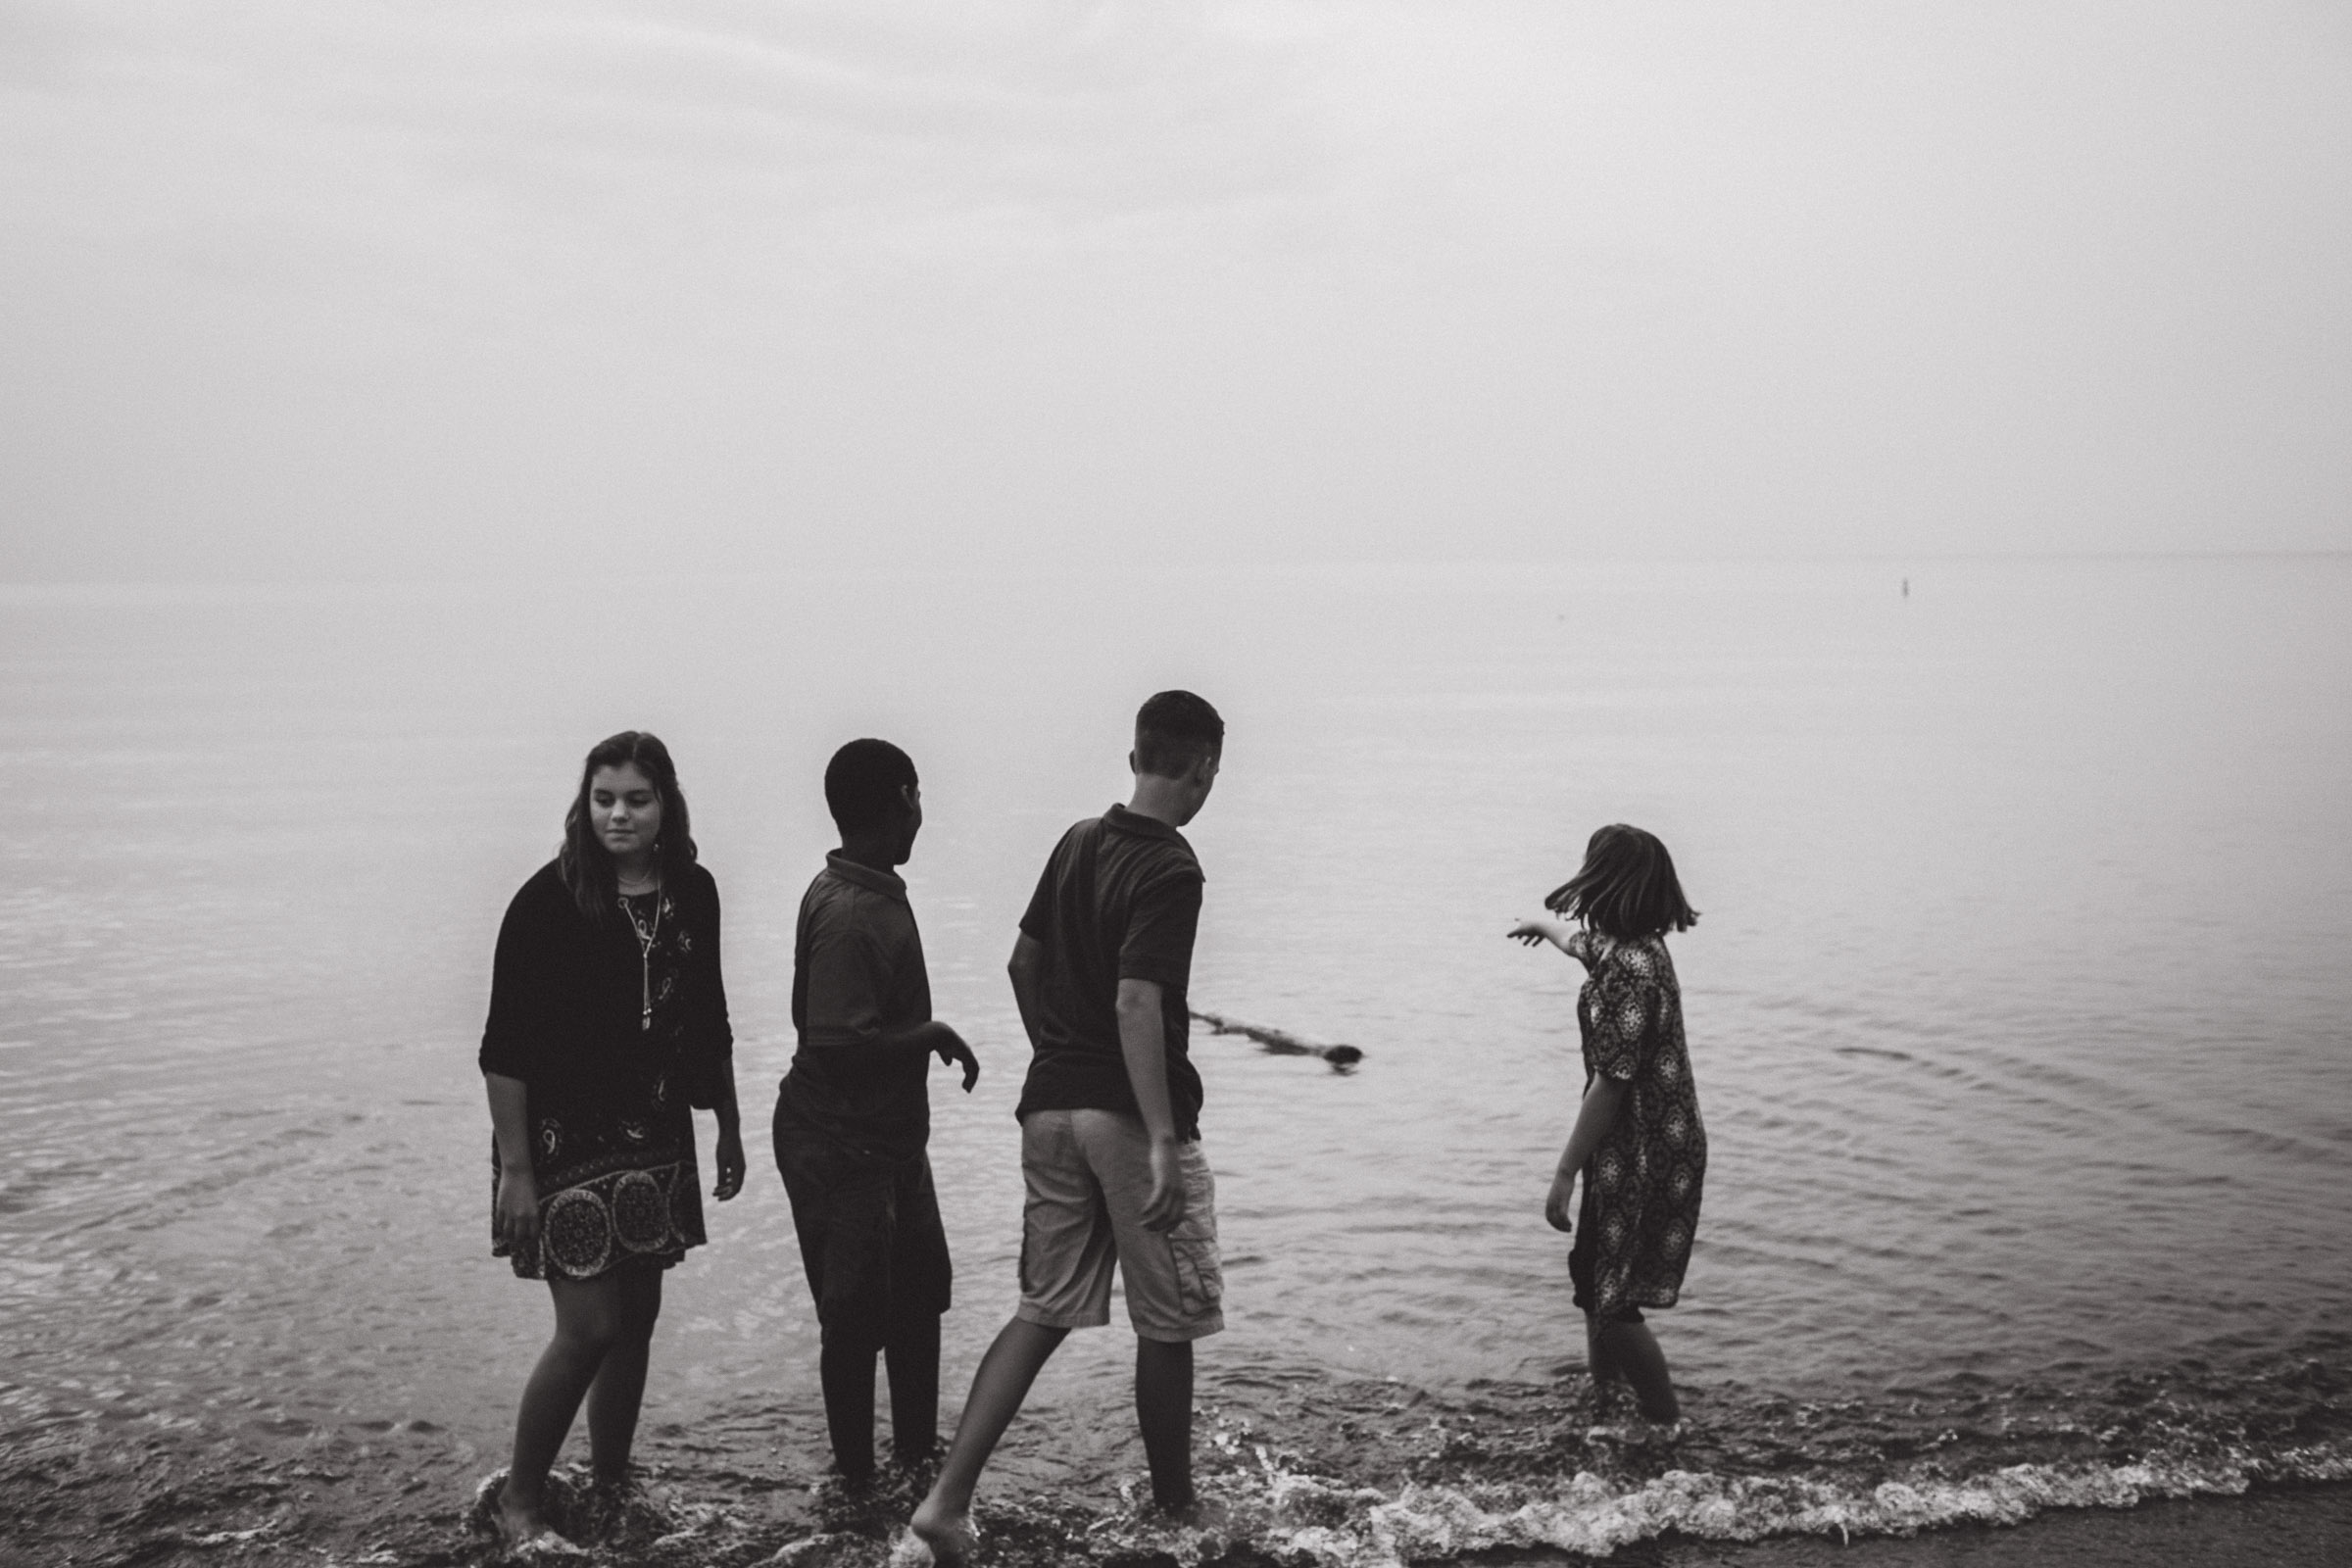 children playing by the water